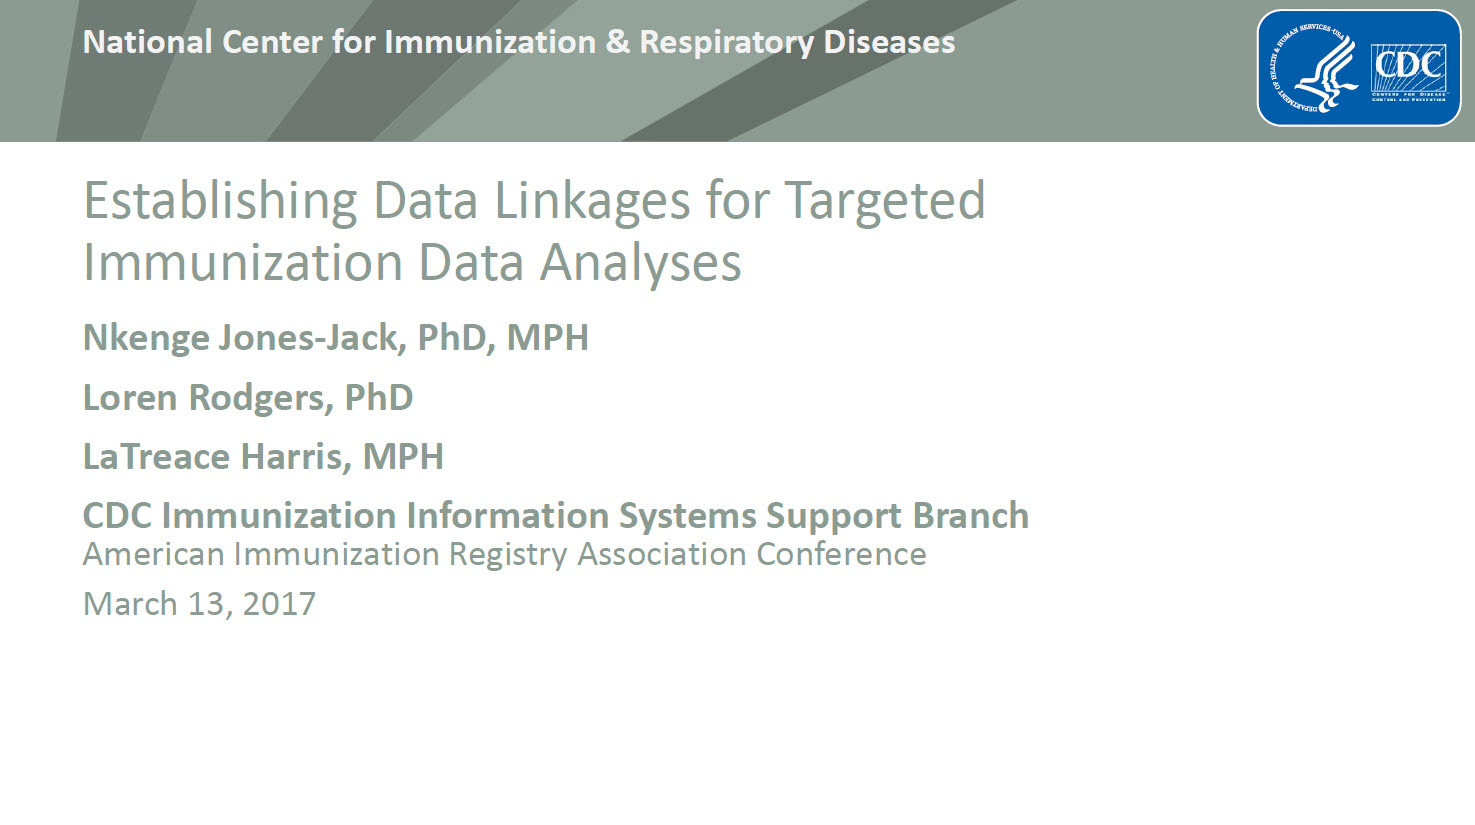 Establishing Data Linkages for Targeted Immunization Data Analyses